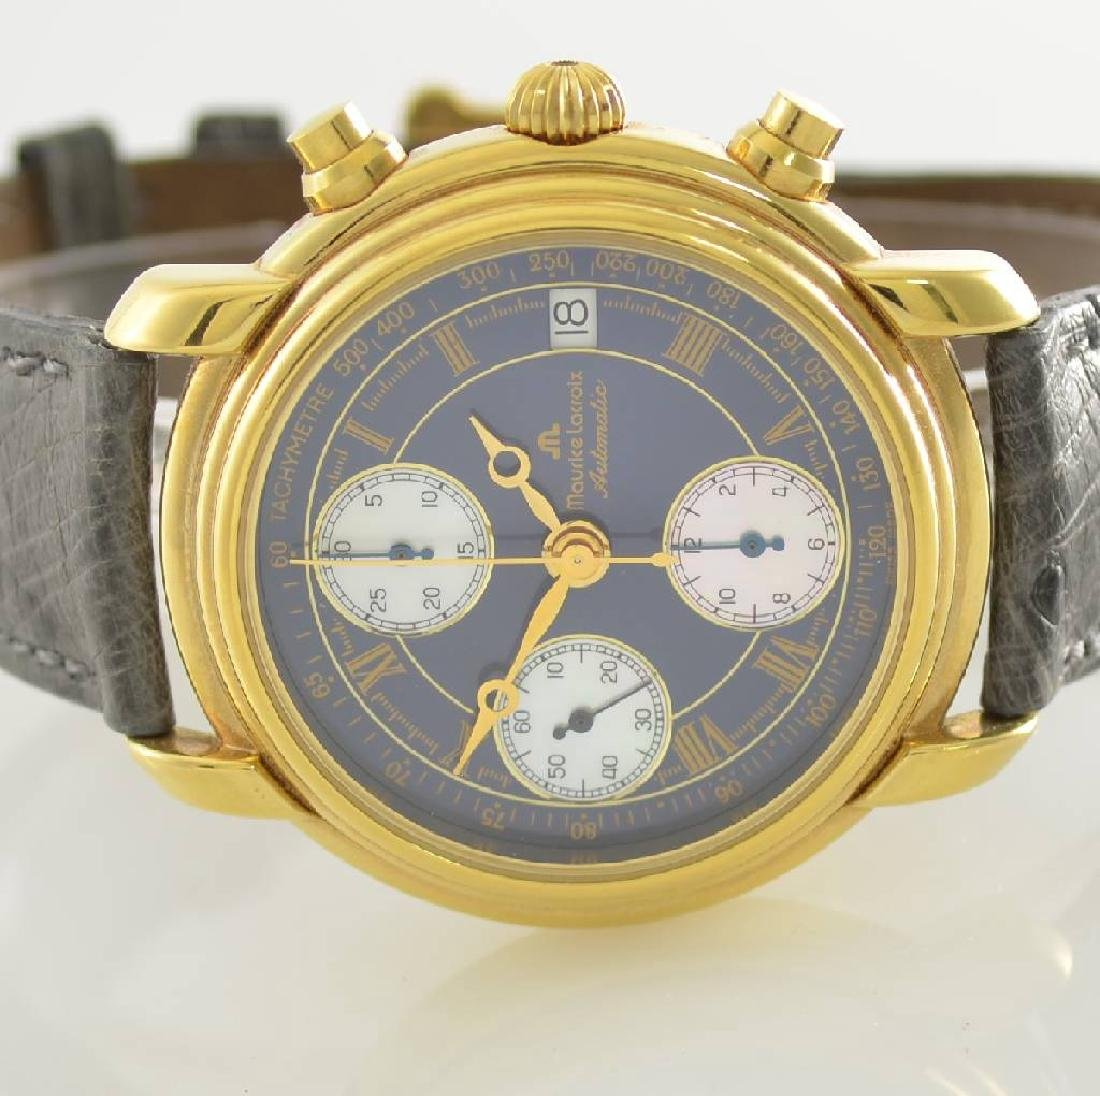 MAURICE LACROIX gents wristwatch with chronograph - 2